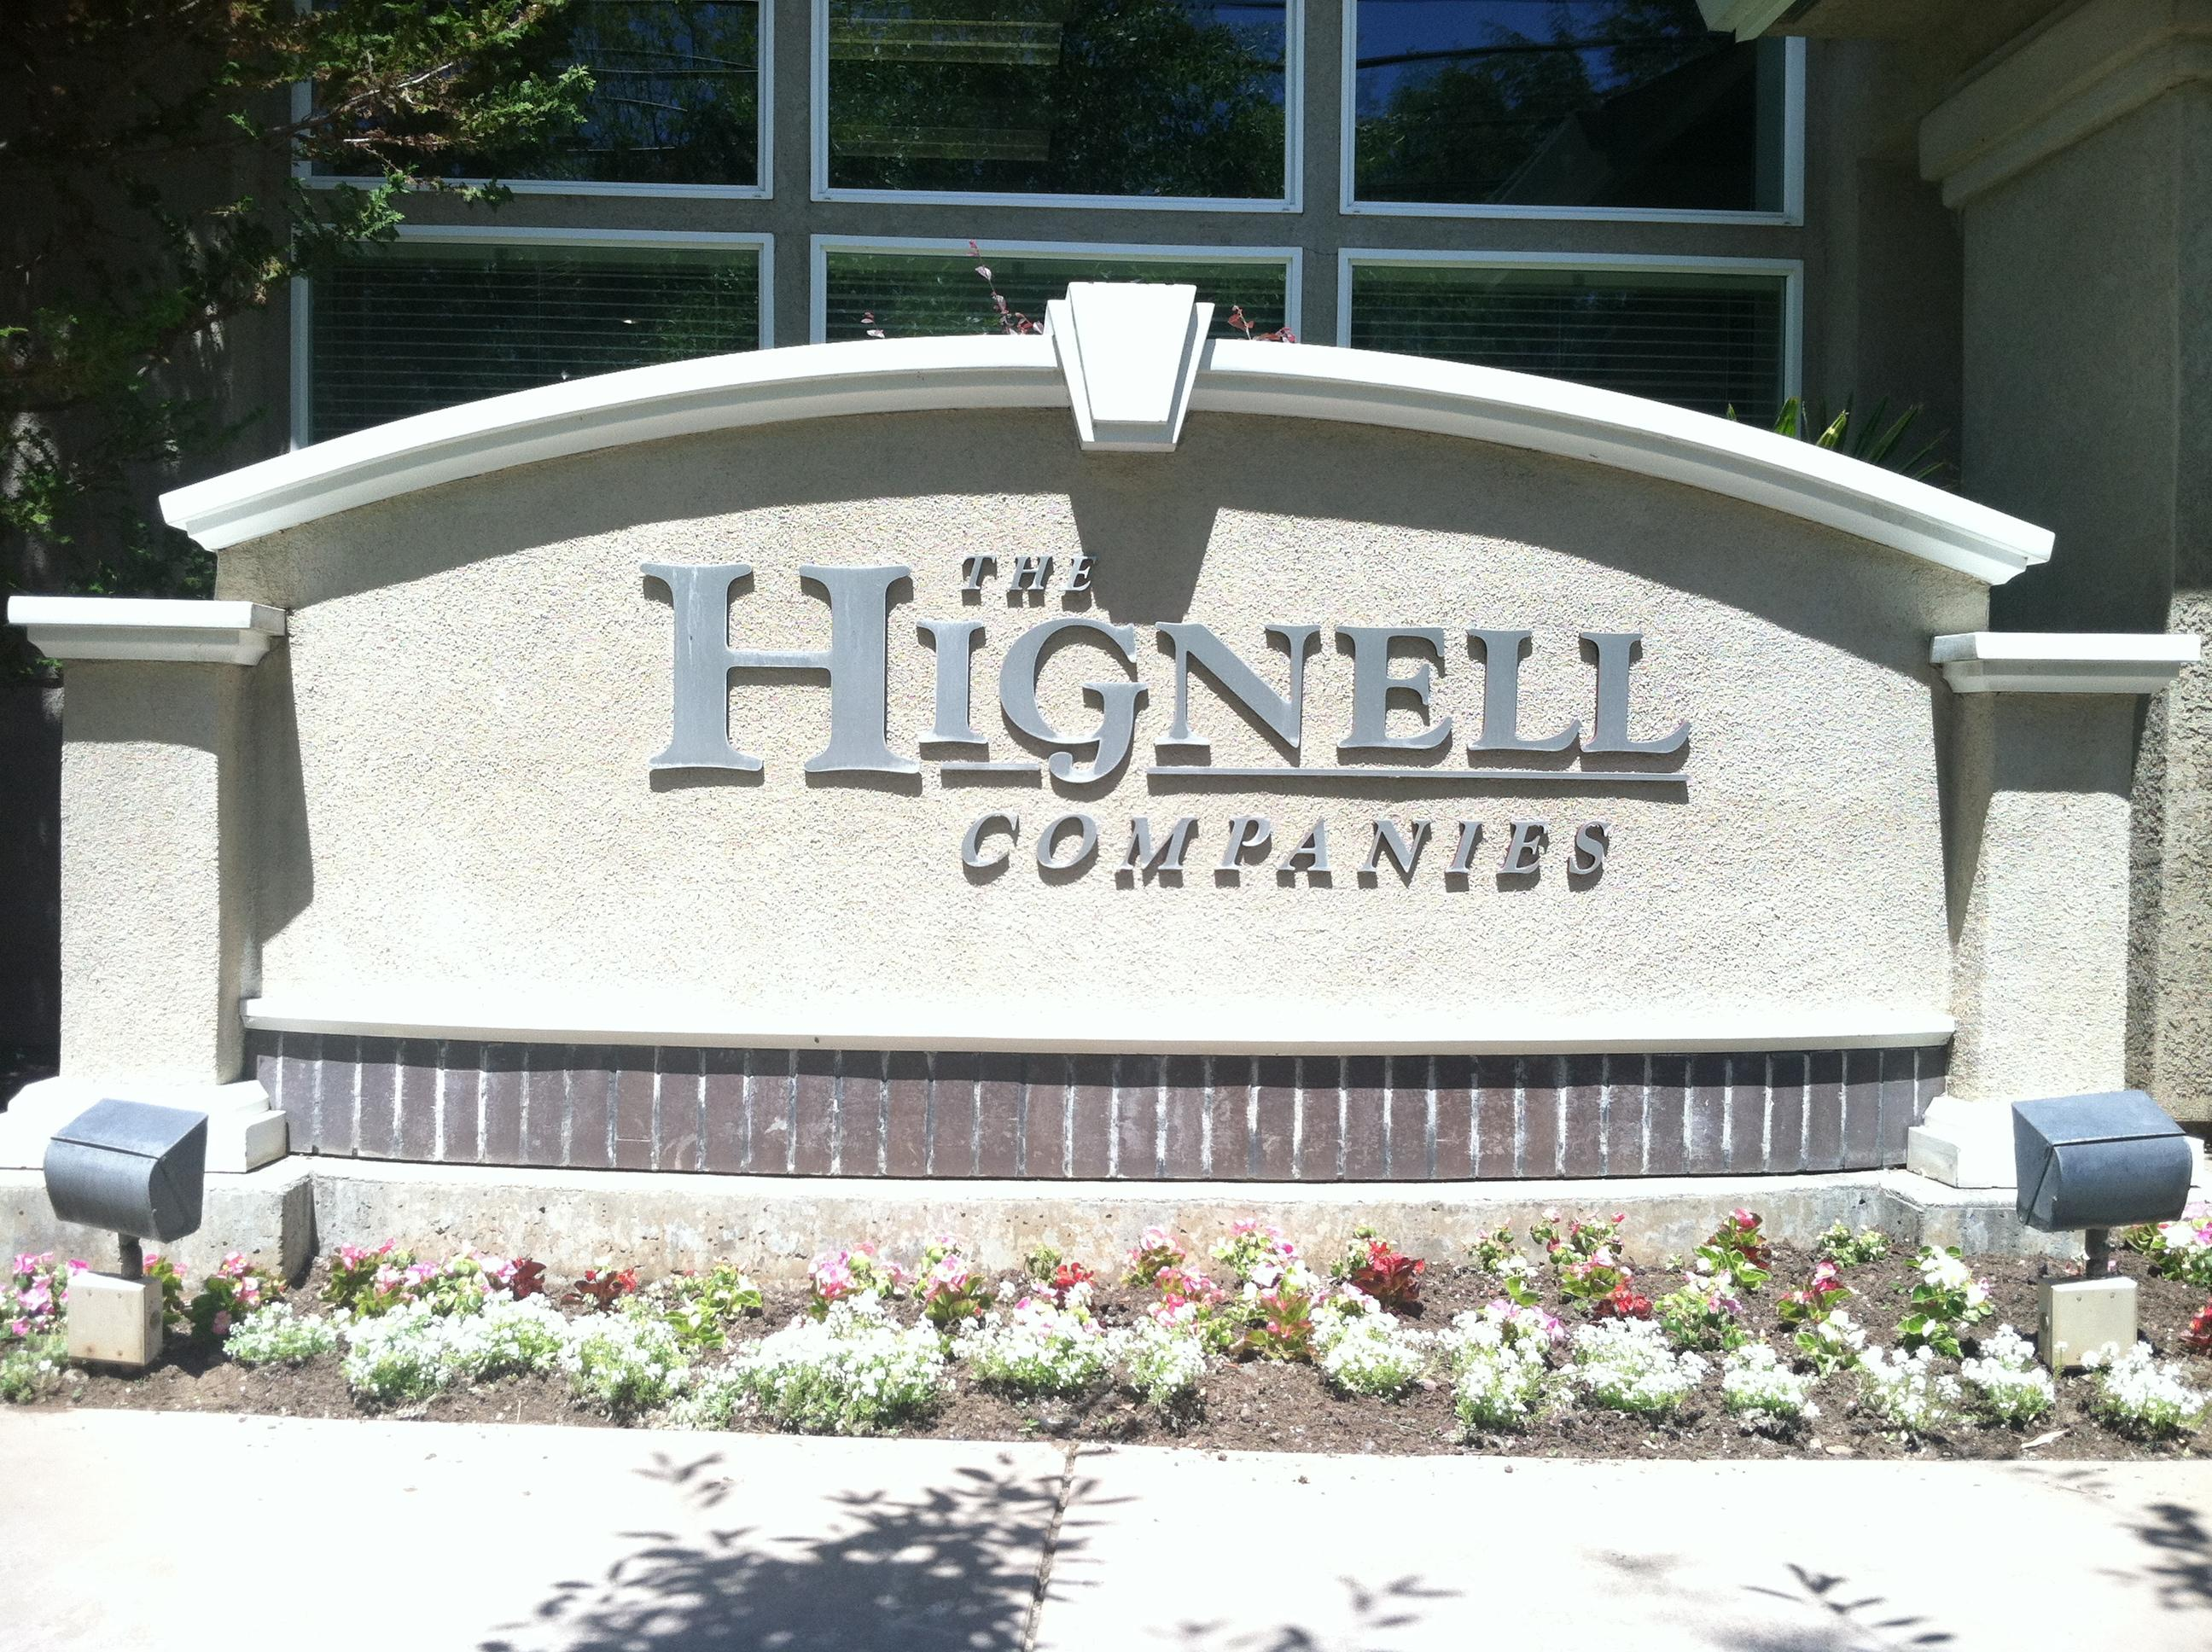 The Hignell Companies - ad image